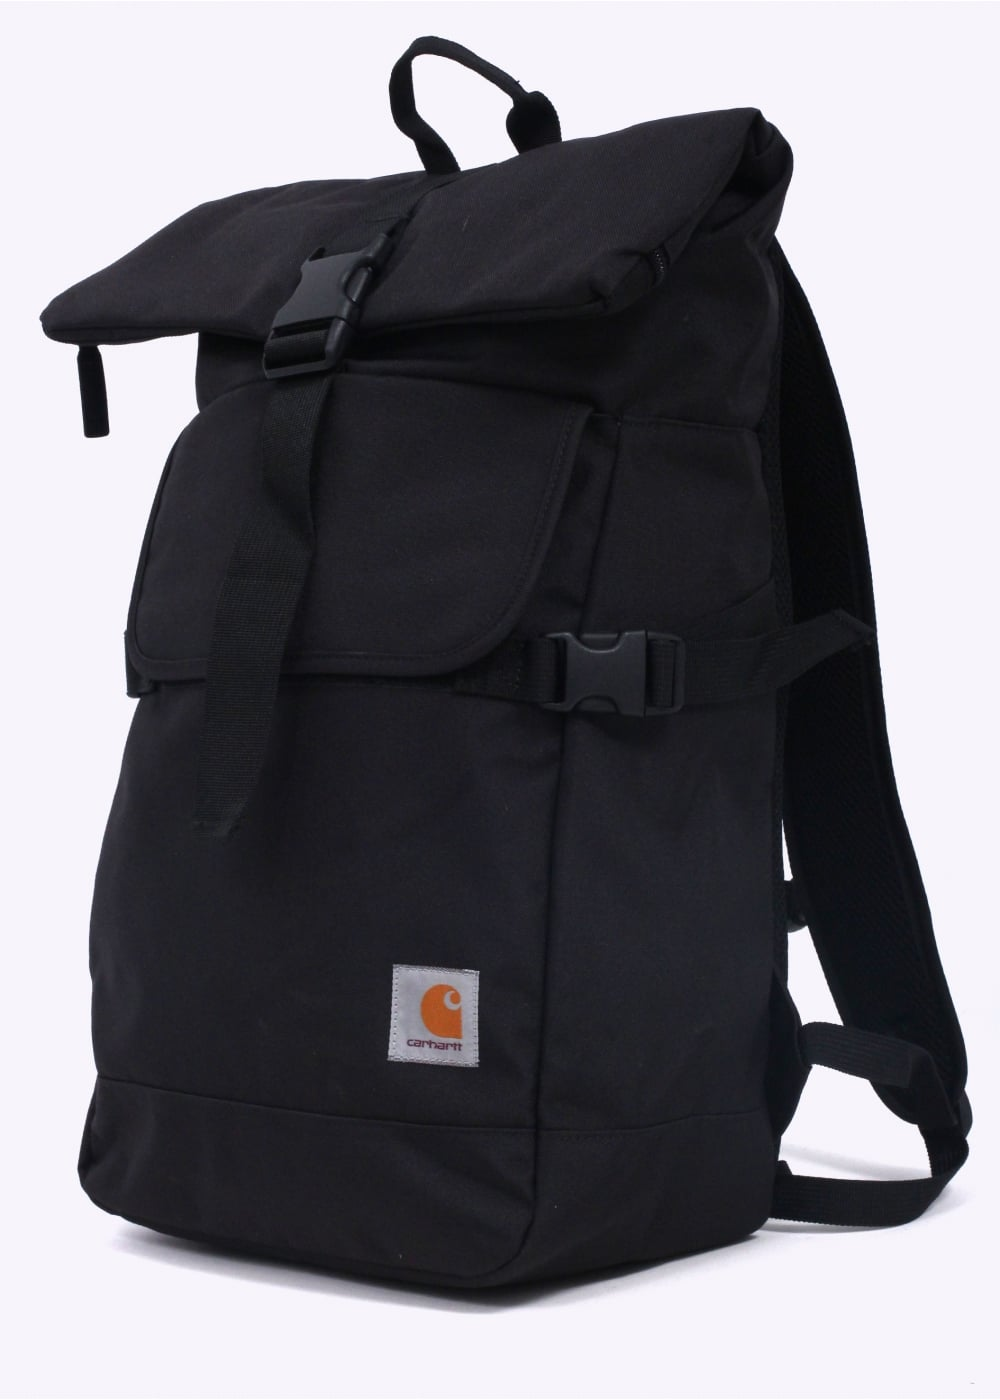 Carhartt Phillips Backpack Carhartt From Triads Uk